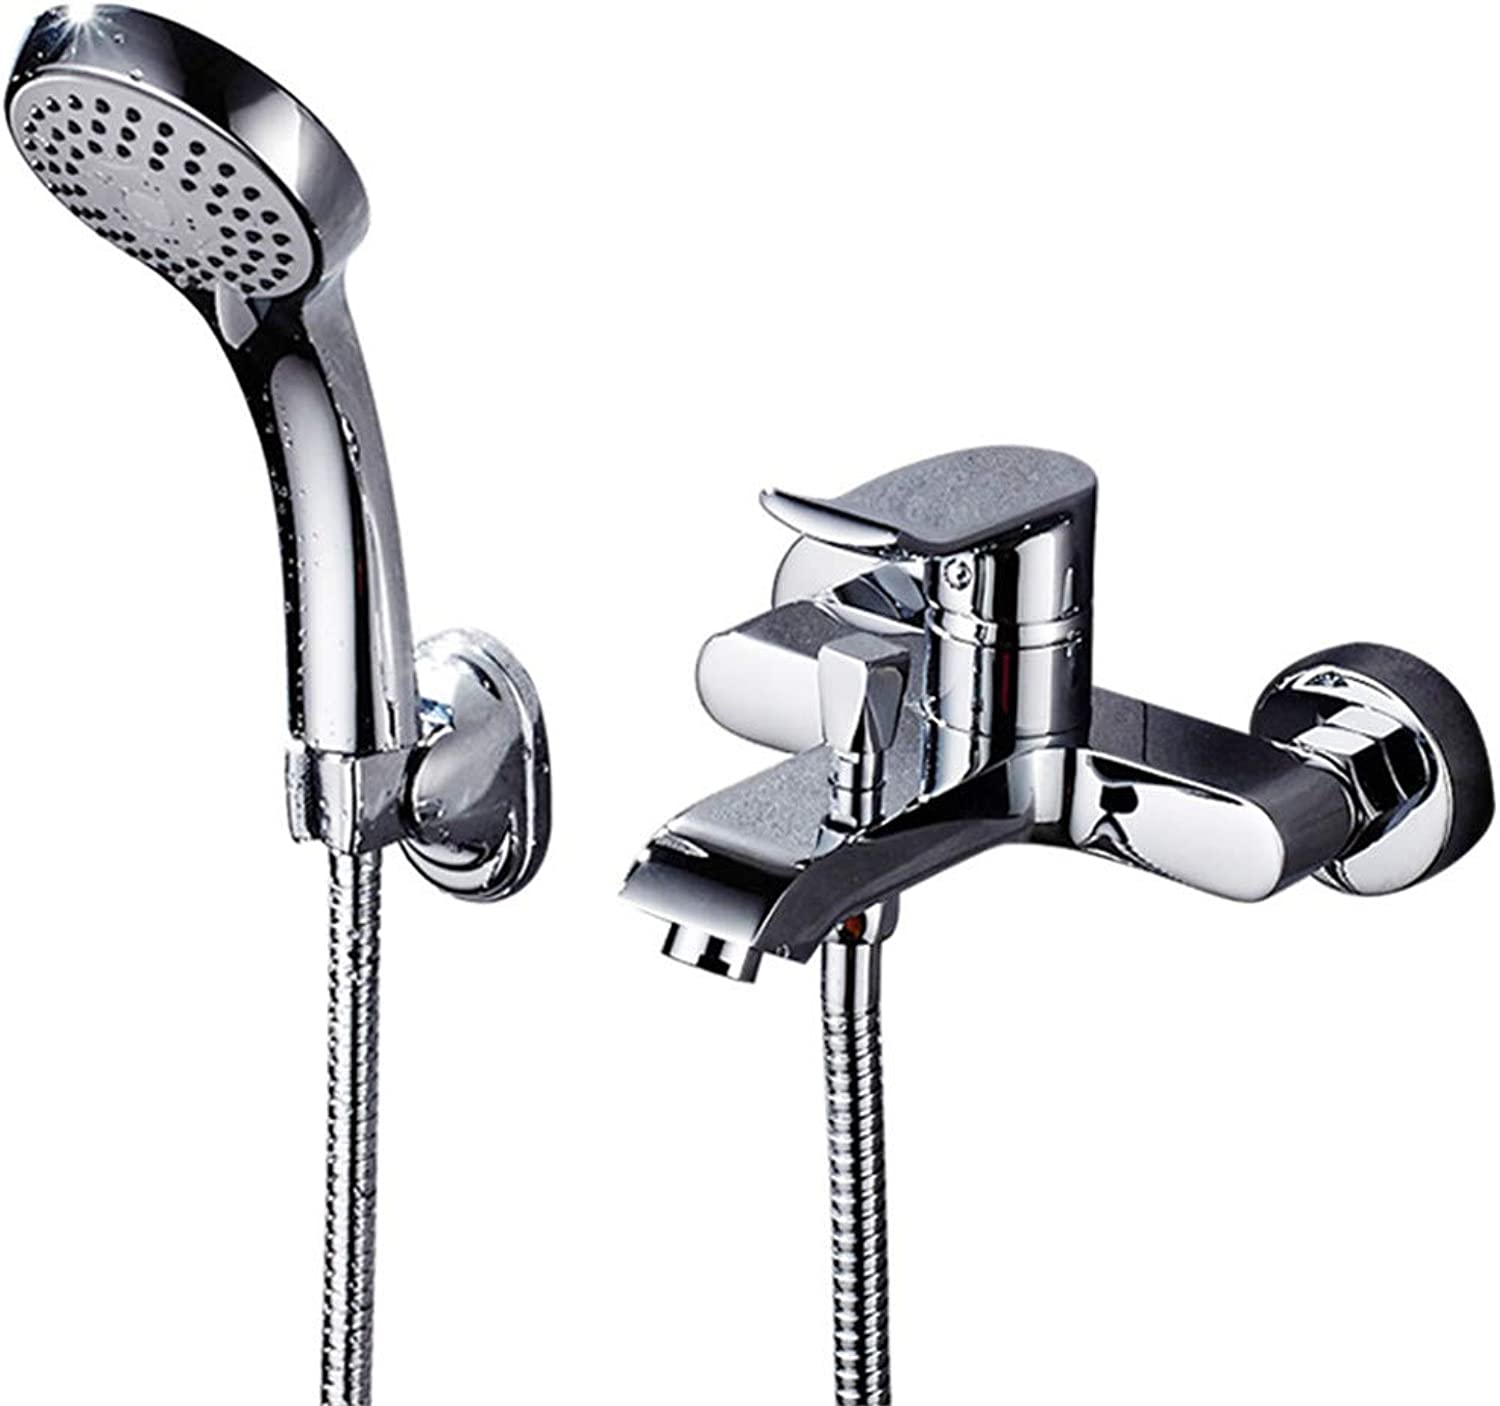 LHY BATHLEADER Single-Lever Bath Tap, Chrome Bath and Shower Mixer, Wall Mounted Hand Shower, Easy to Clean, Easy Inssizetion